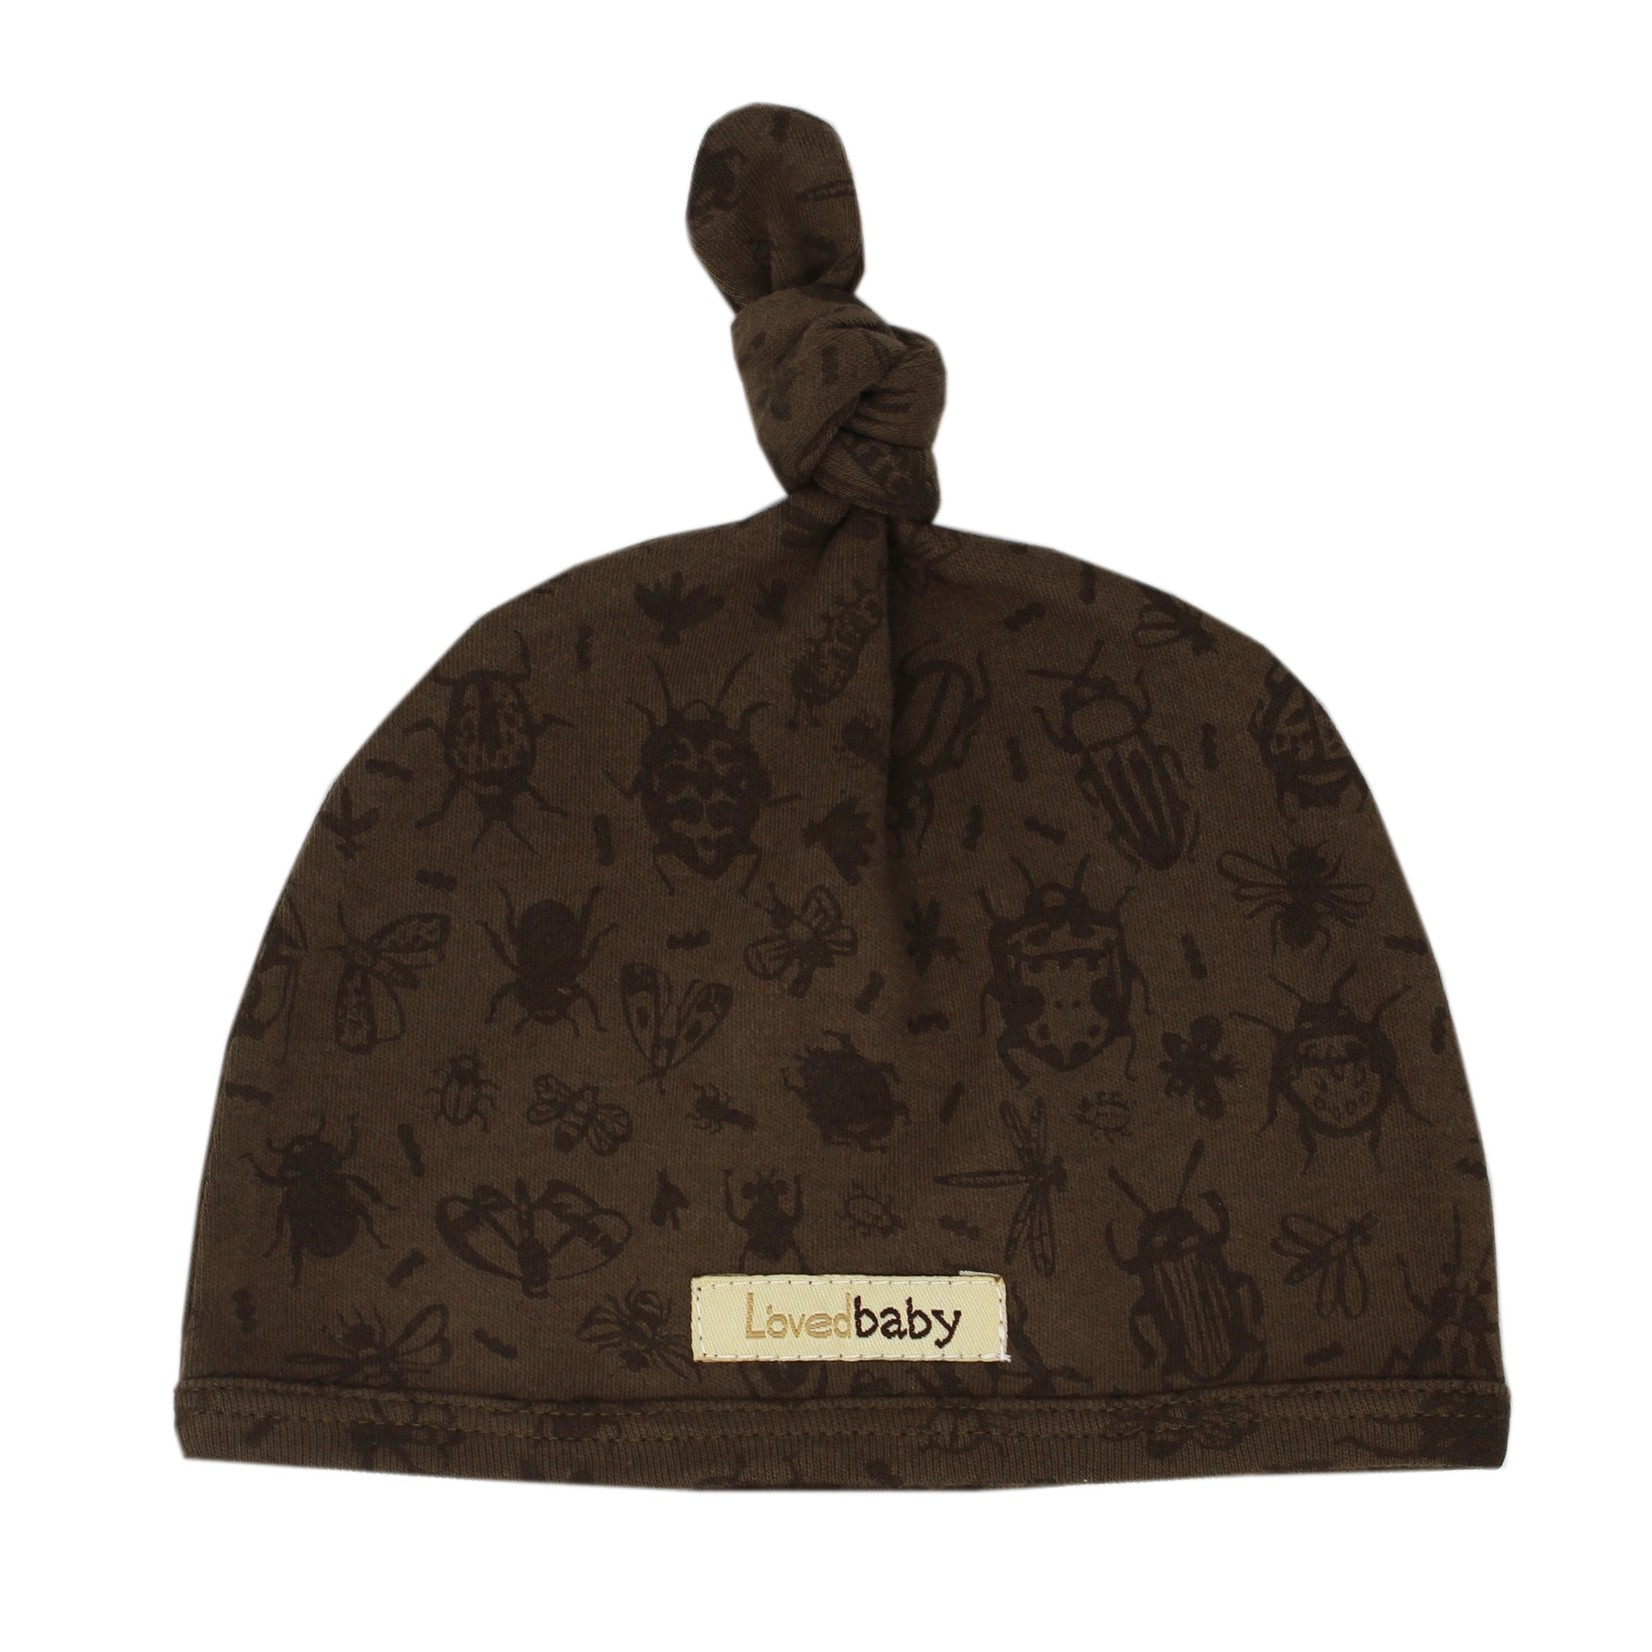 L'oved Baby Don't Bug Me Top-Knot Hat